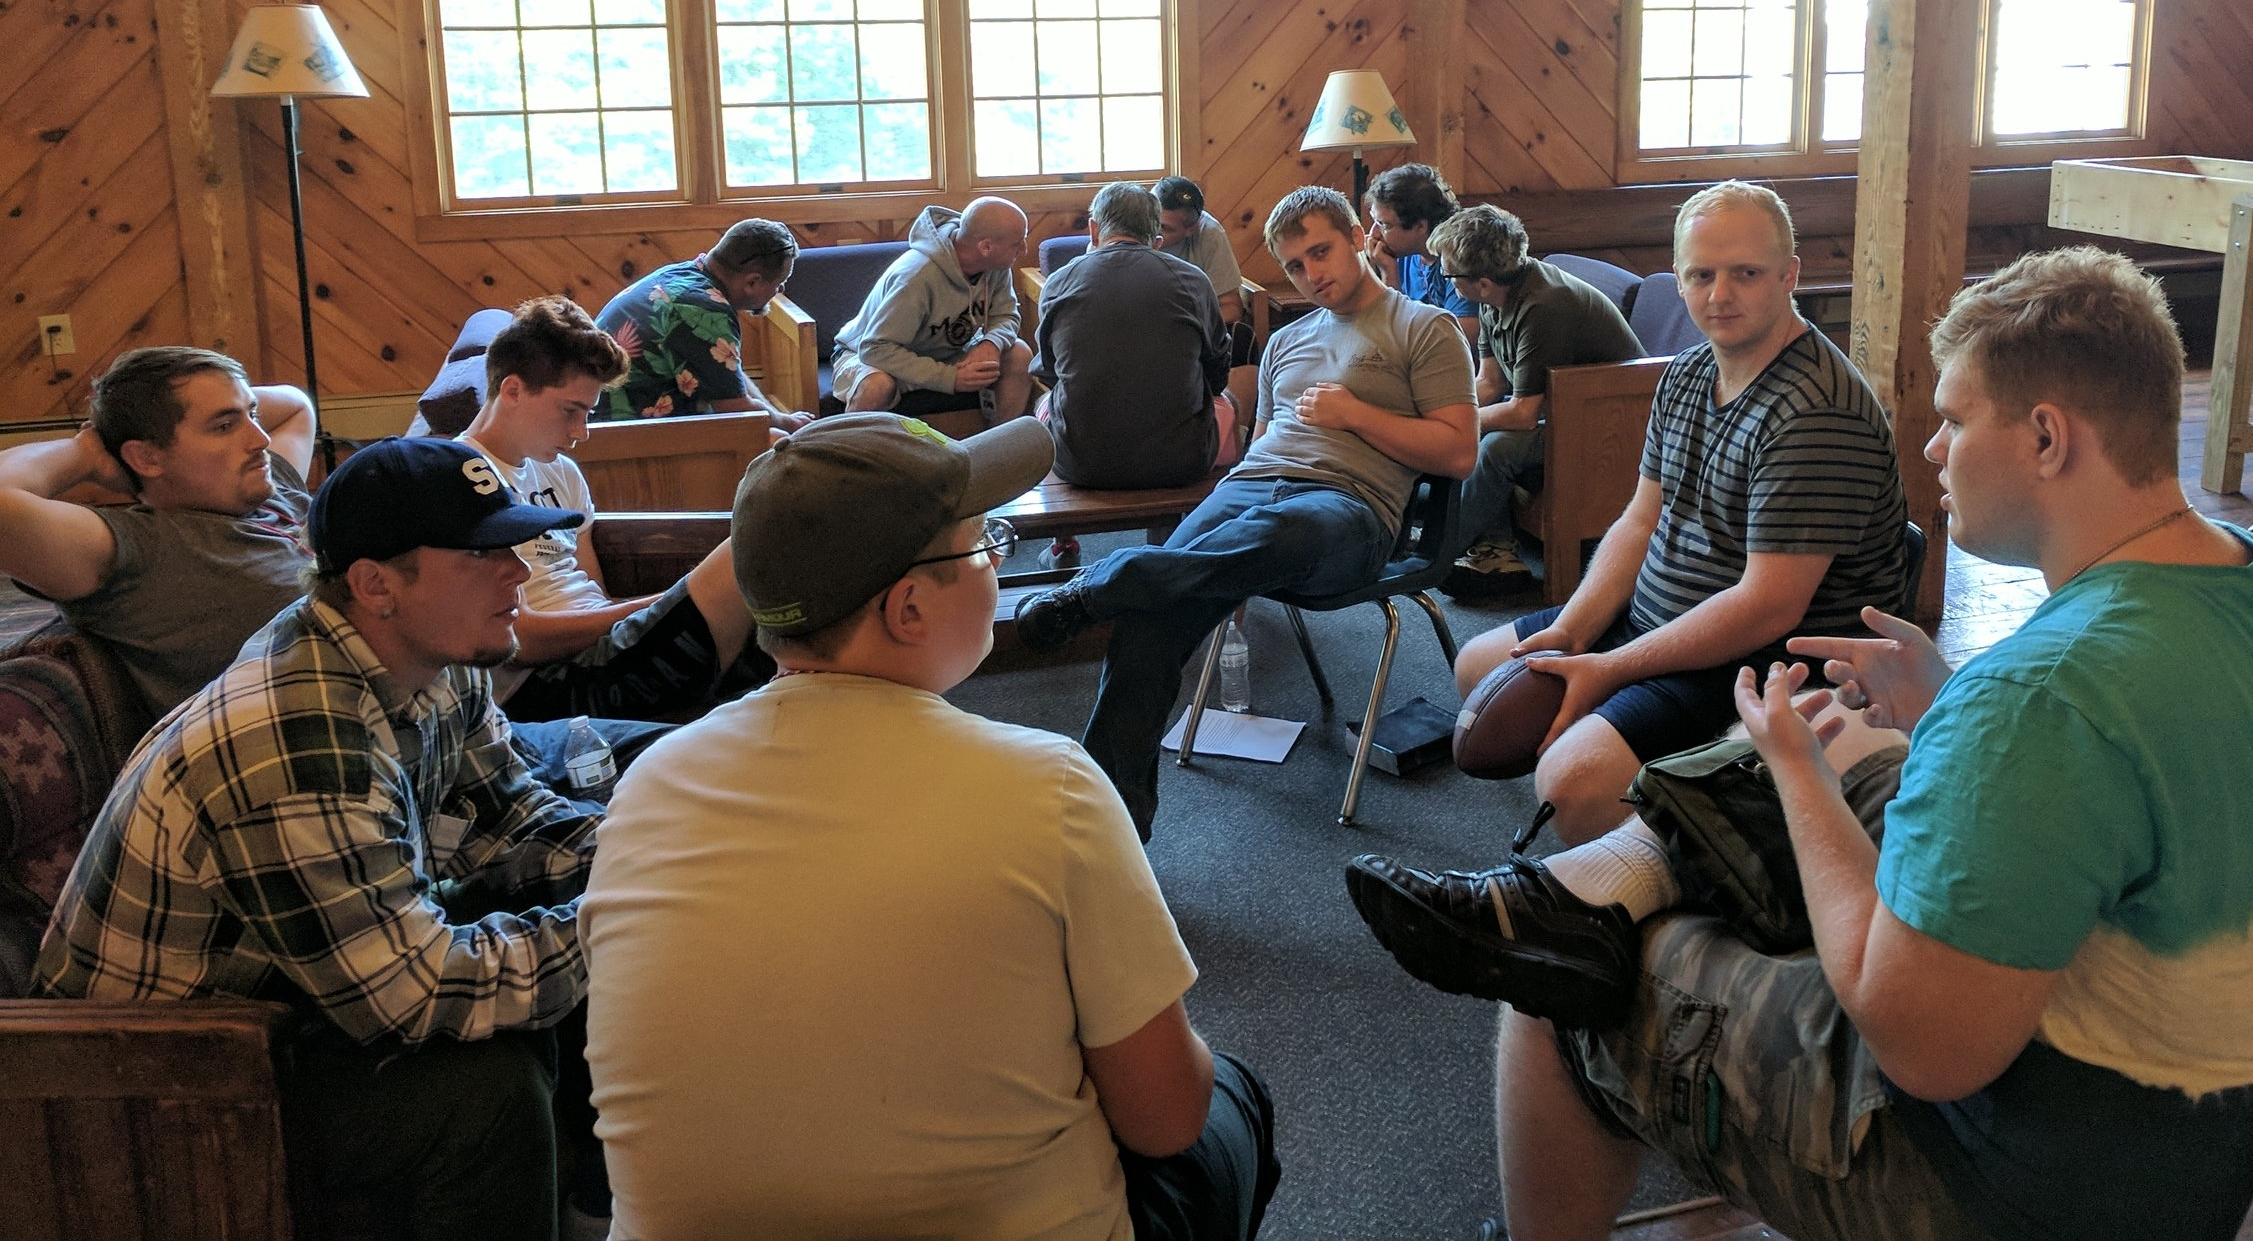 A few of our young men in a breakout session during the men's retreat last weekend.